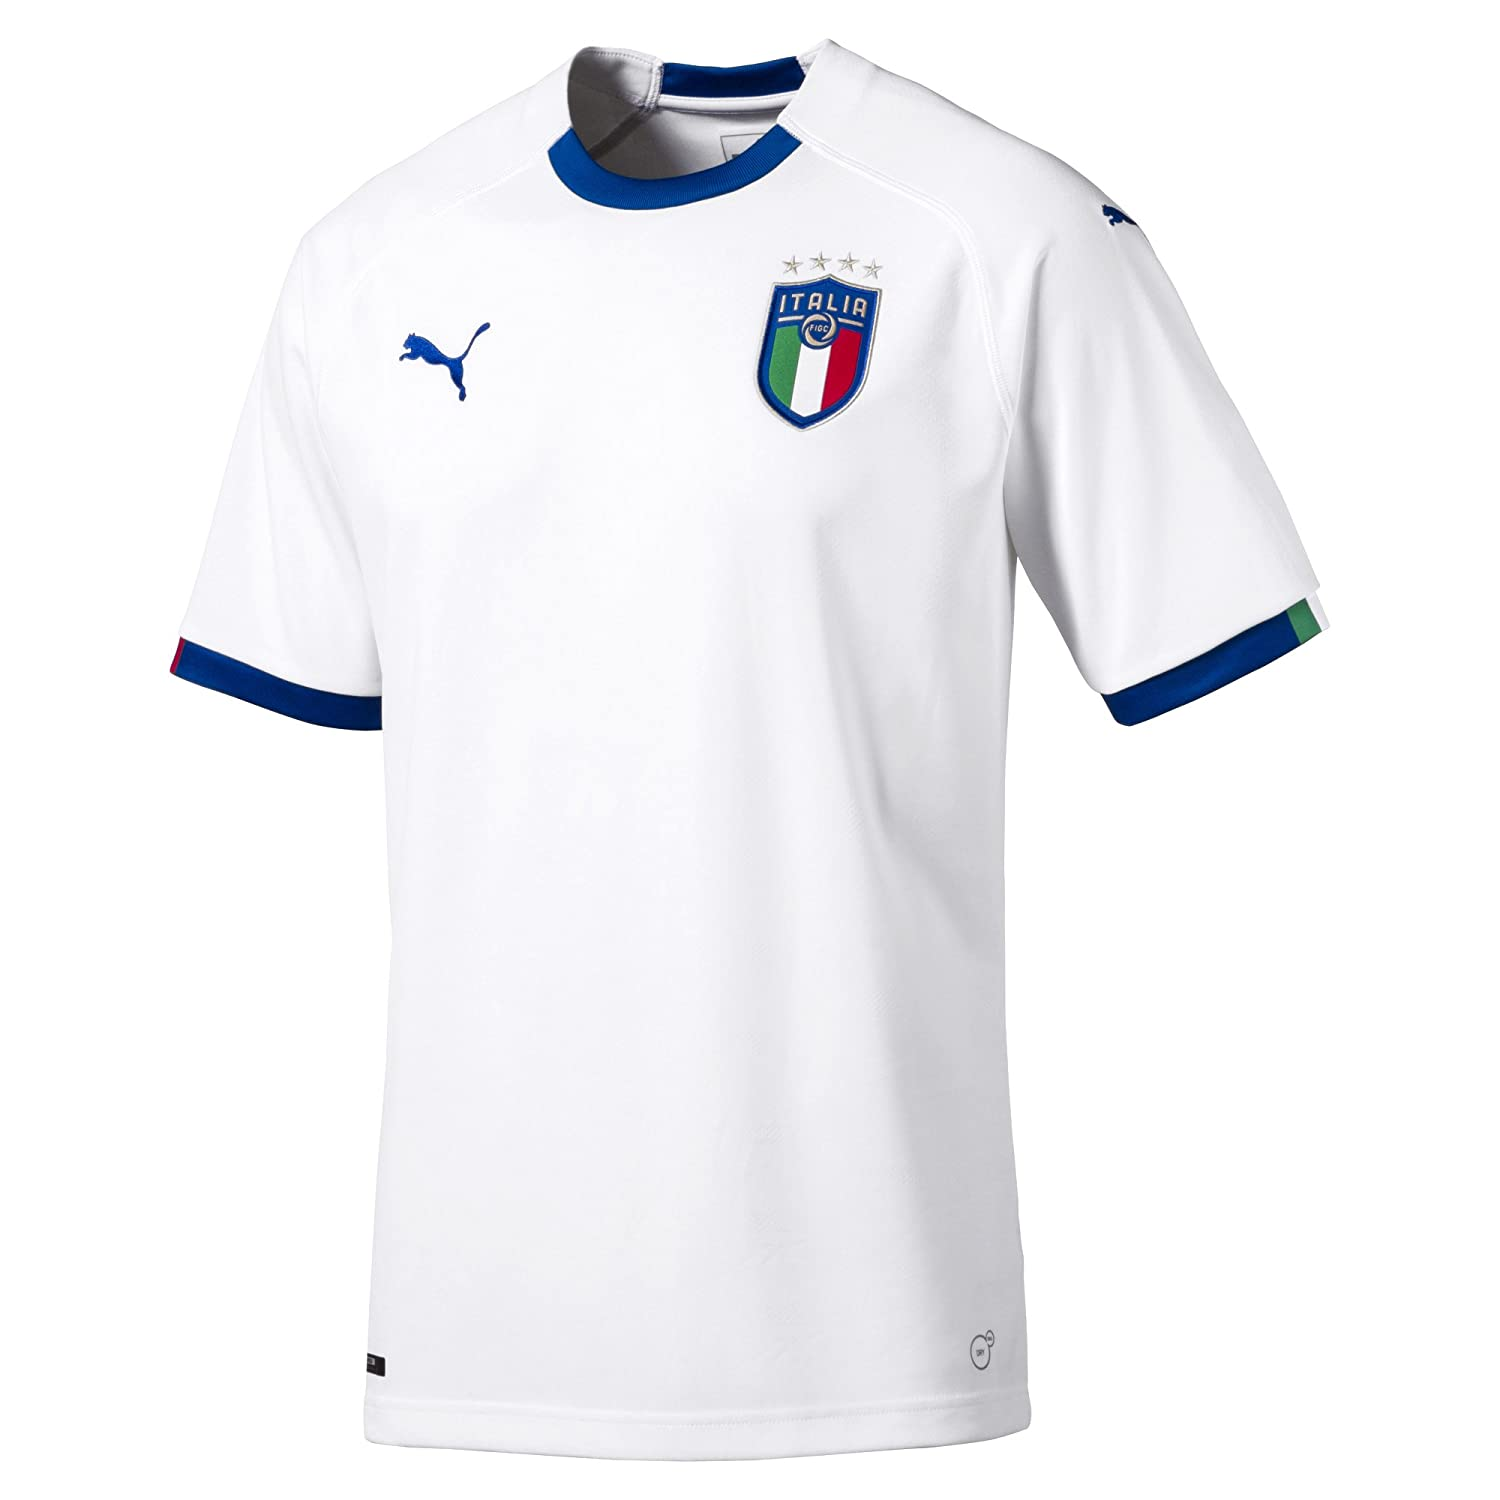 2018-2019 Italy Away Puma Football Shirt B07864YJN4 Large Adults|White White Large Adults